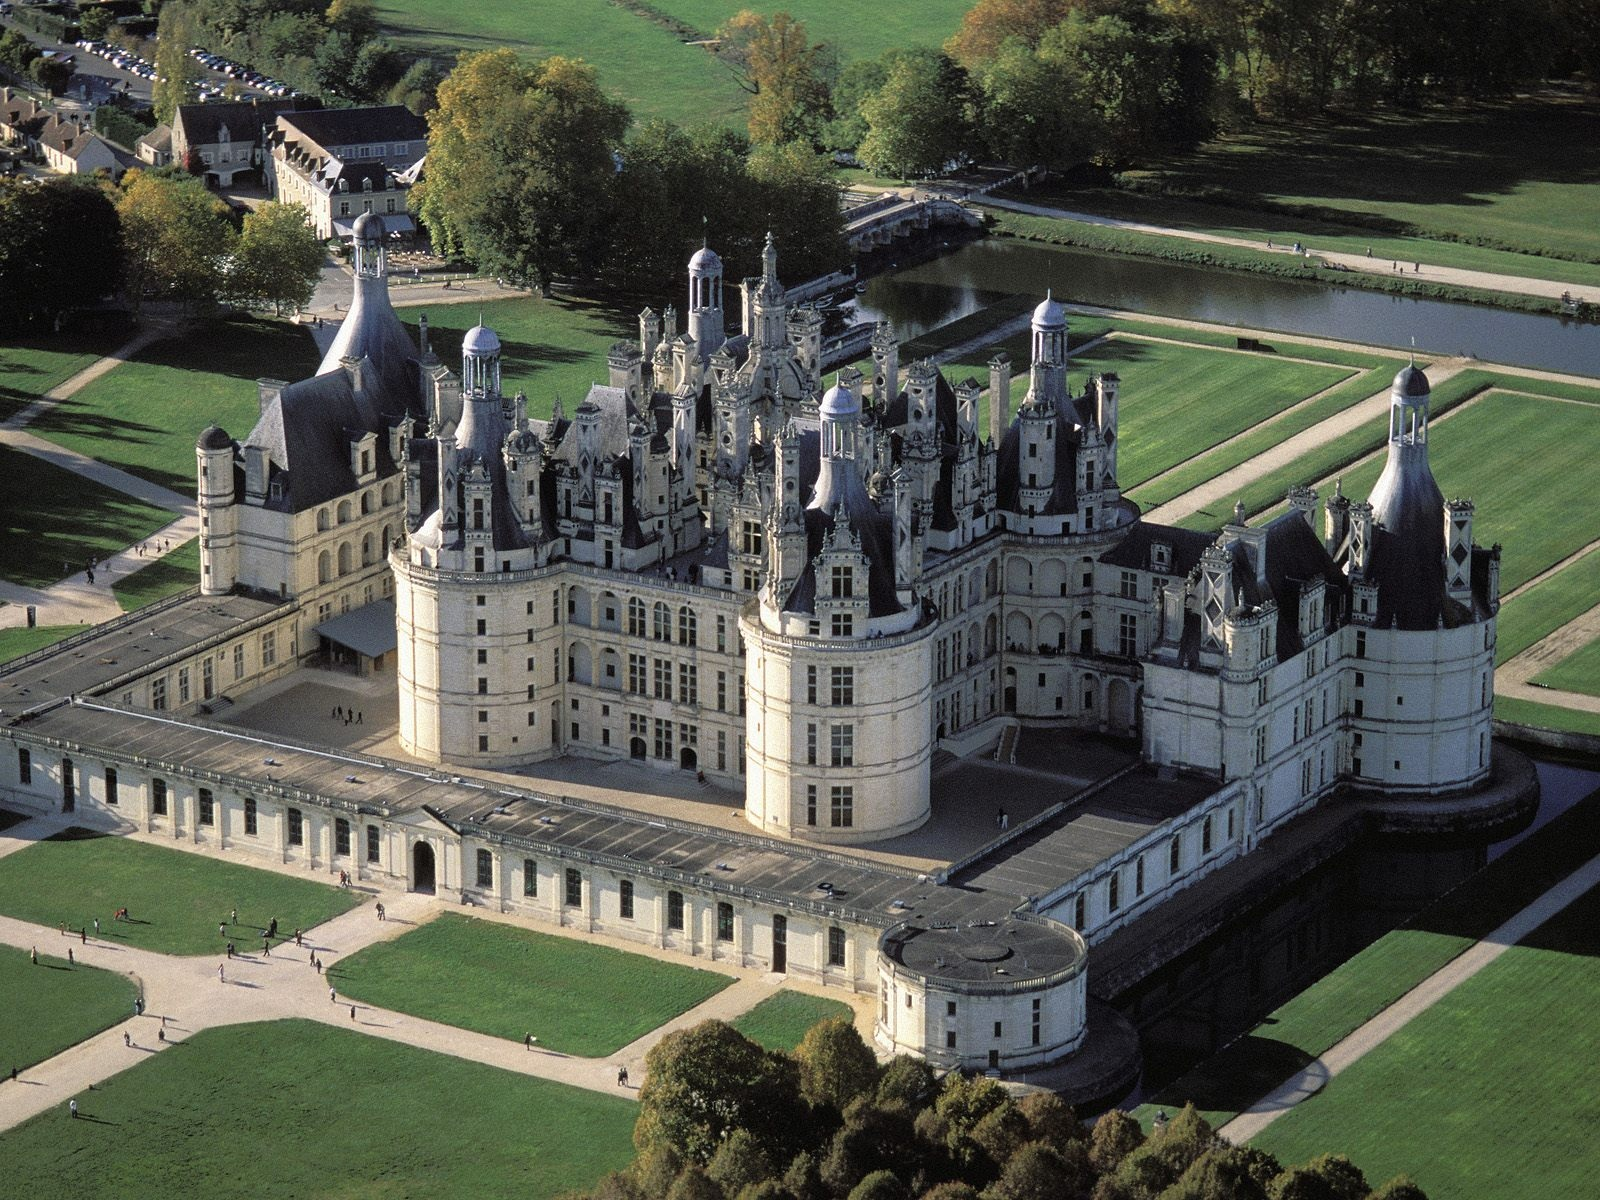 Bordeaux and The Loire Valley Luxury tour - WINE CHATEAUX AND RENAISSANCE CASTLES